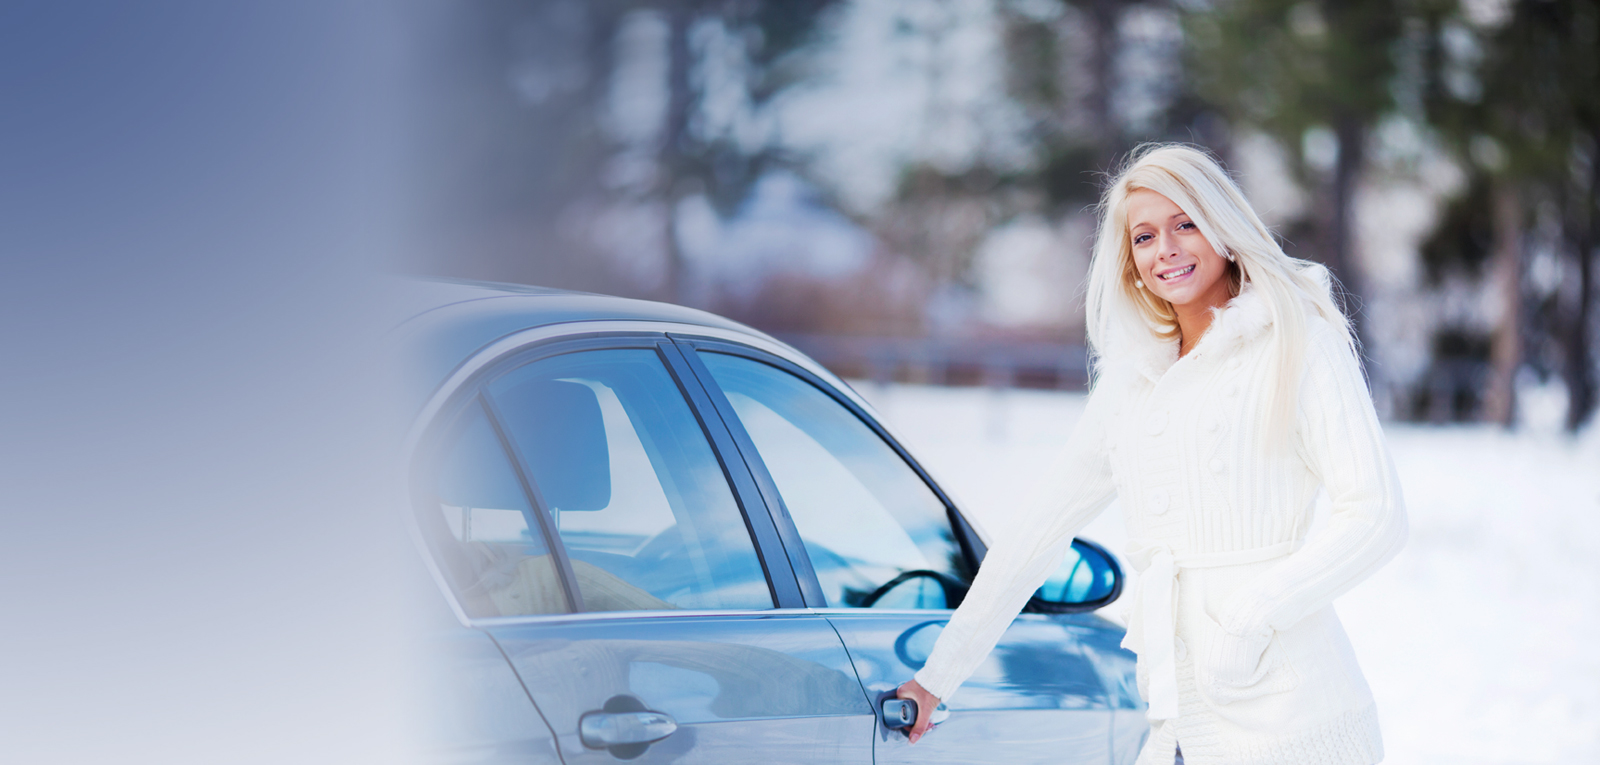 https://www.dutchpoint.org/images/default-source/Homepage-Banners/auto-loans-winter-hp-banners.jpg?sfvrsn=2